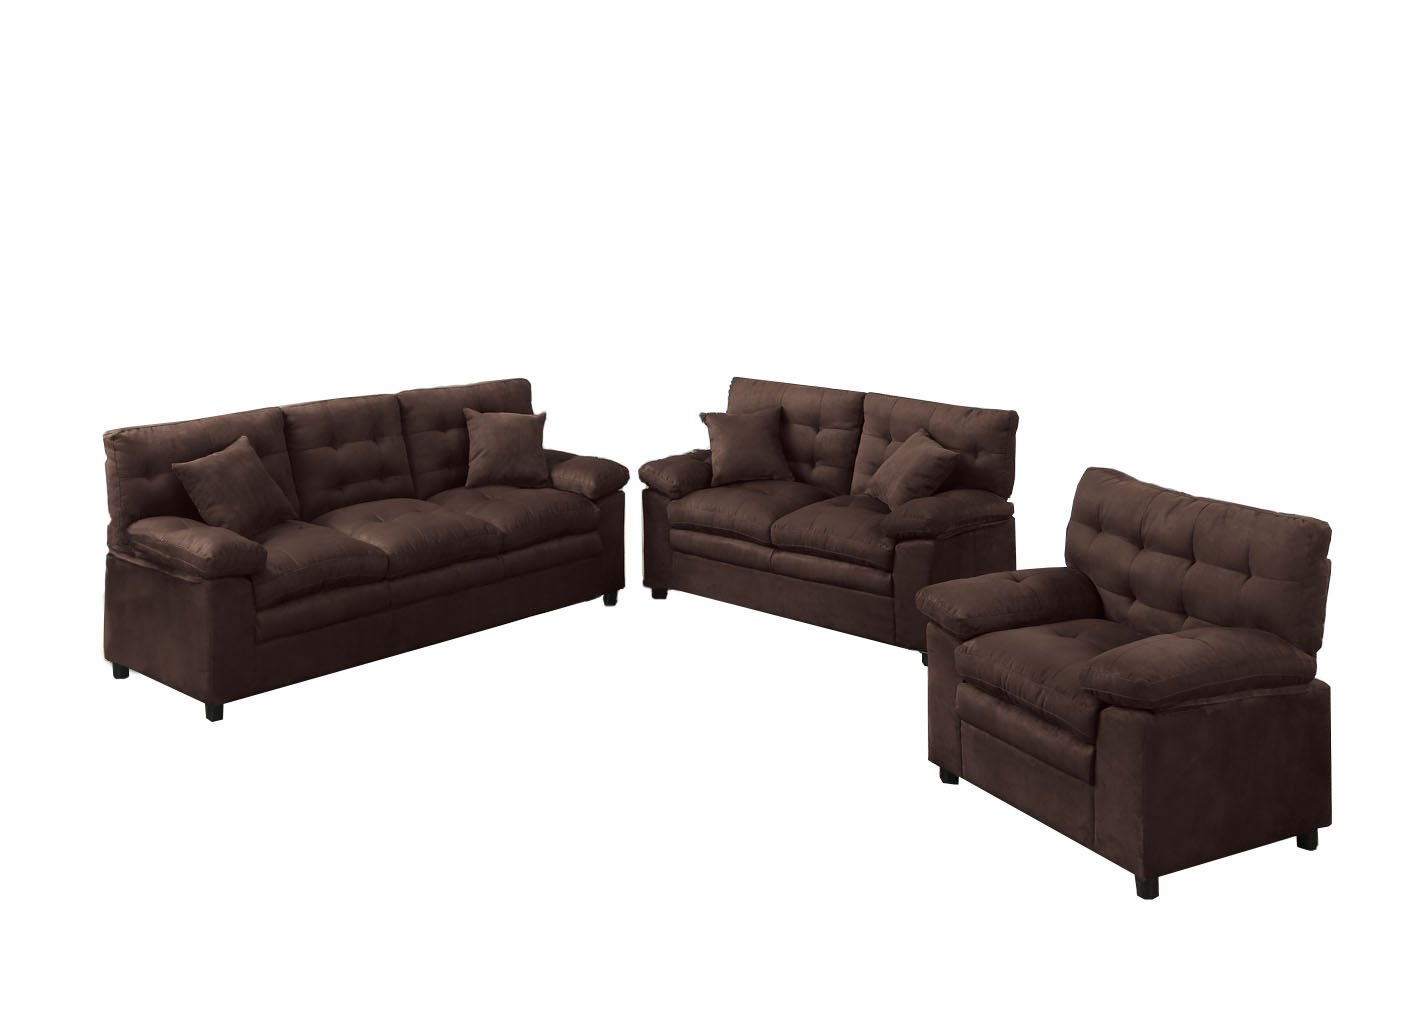 Poundex Bobkona Colona Mircosuede 3 Piece Sofa and Loveseat with Chair Set, Chocolate by Poundex